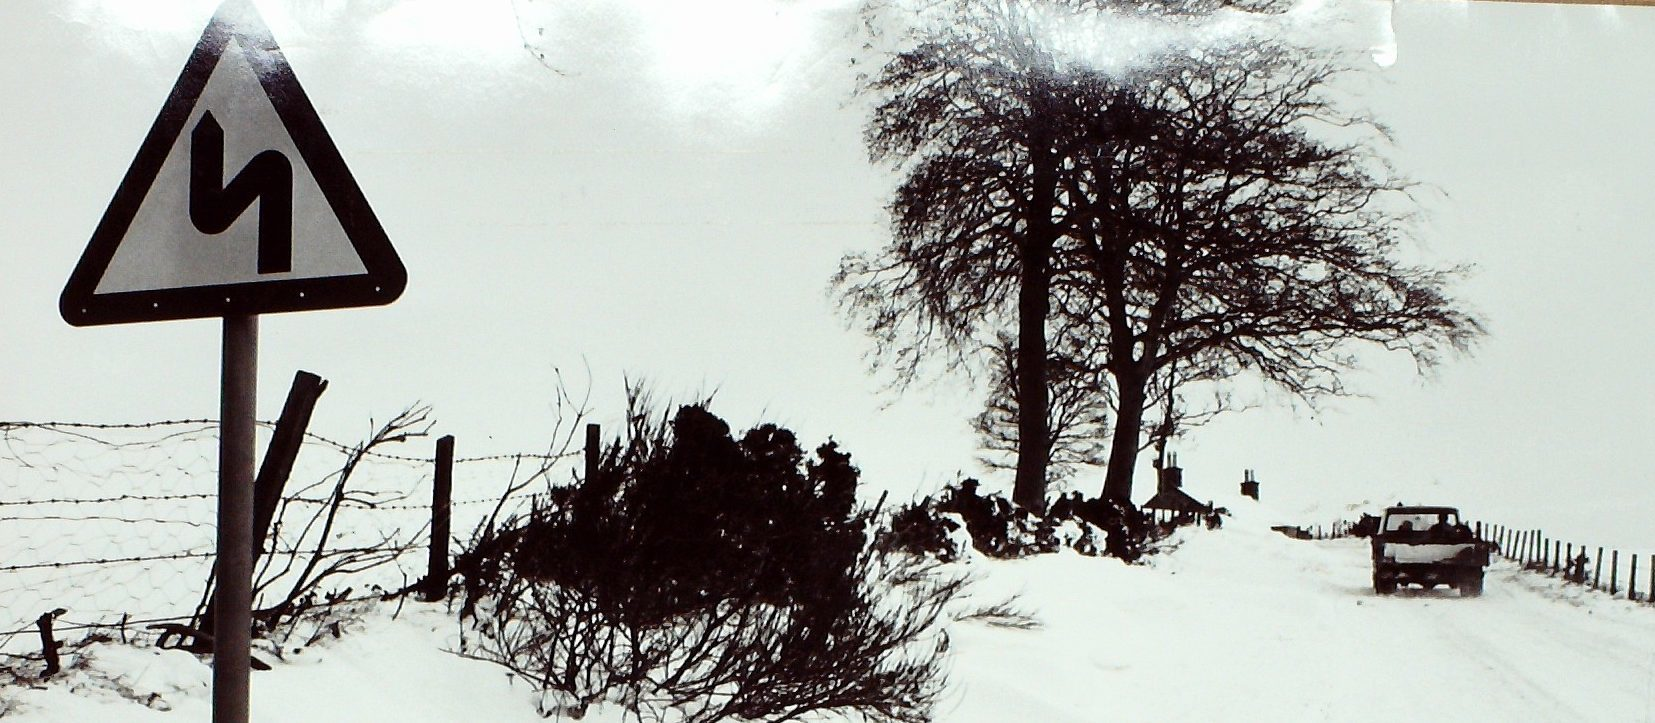 The B978 looking towards Craichie near Forfar during the winter storm in 1983.